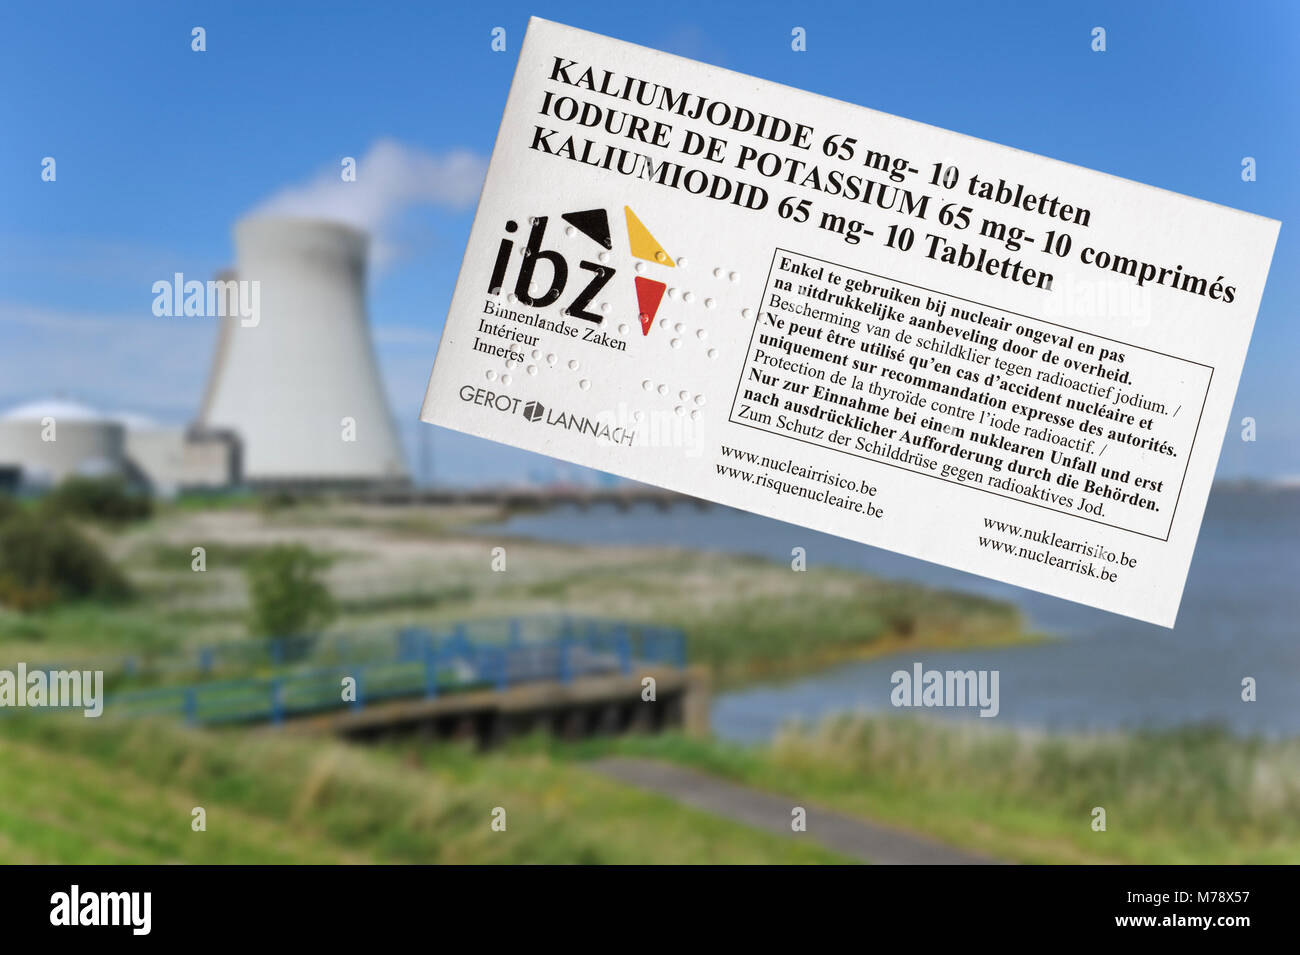 Doel nuclear power plant and iodide tablets to protect Belgian residents from radioactive fall-out in the event - Stock Image